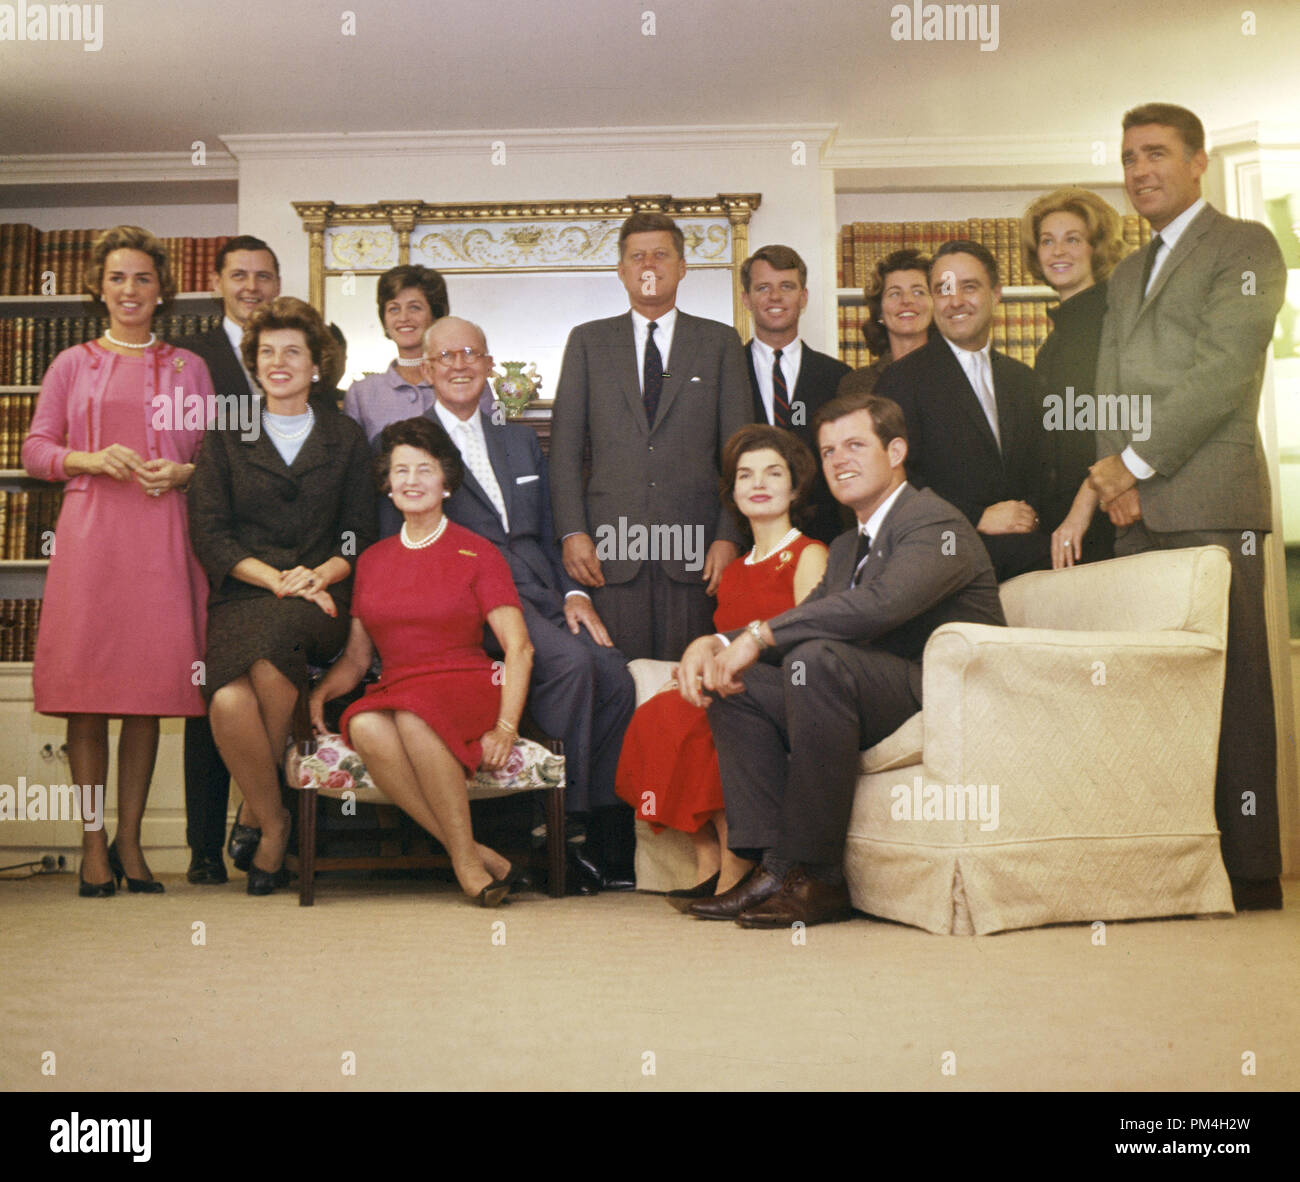 Kennedy Family Portrait. The Kennedy family in the home of Joseph P. Kennedy on Nov. 9, 1960. Standing, left to right: Ethel Skakel Kennedy, Steve Smith, Jean Kennedy Smith; President-elect John F. Kennedy, Robert F. Kennedy, Patricia Lawford, Sargent Shriver, Joan Bennett Kennedy and Peter Lawford. In foreground, left to right: Eunice Kennedy Shriver, Rose Kennedy, Joseph P. Kennedy, Jacqueline Bouvier Kennedy and Edward M. Kennedy. Courtesy JFK Library  File Reference # 1003_196THA - Stock Image